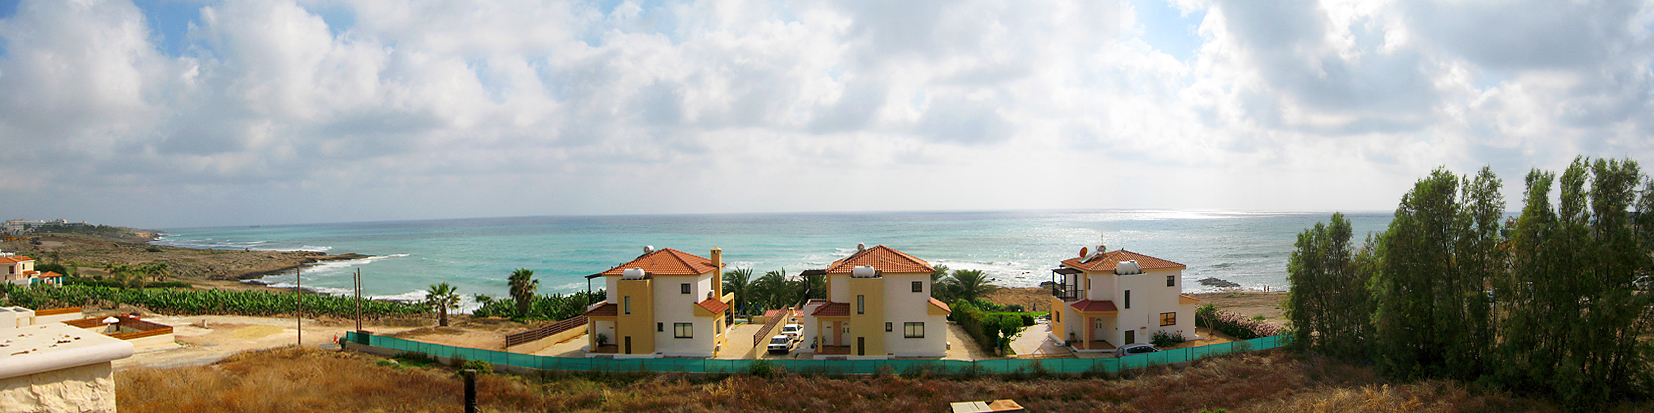 houses by the sea at Paphos